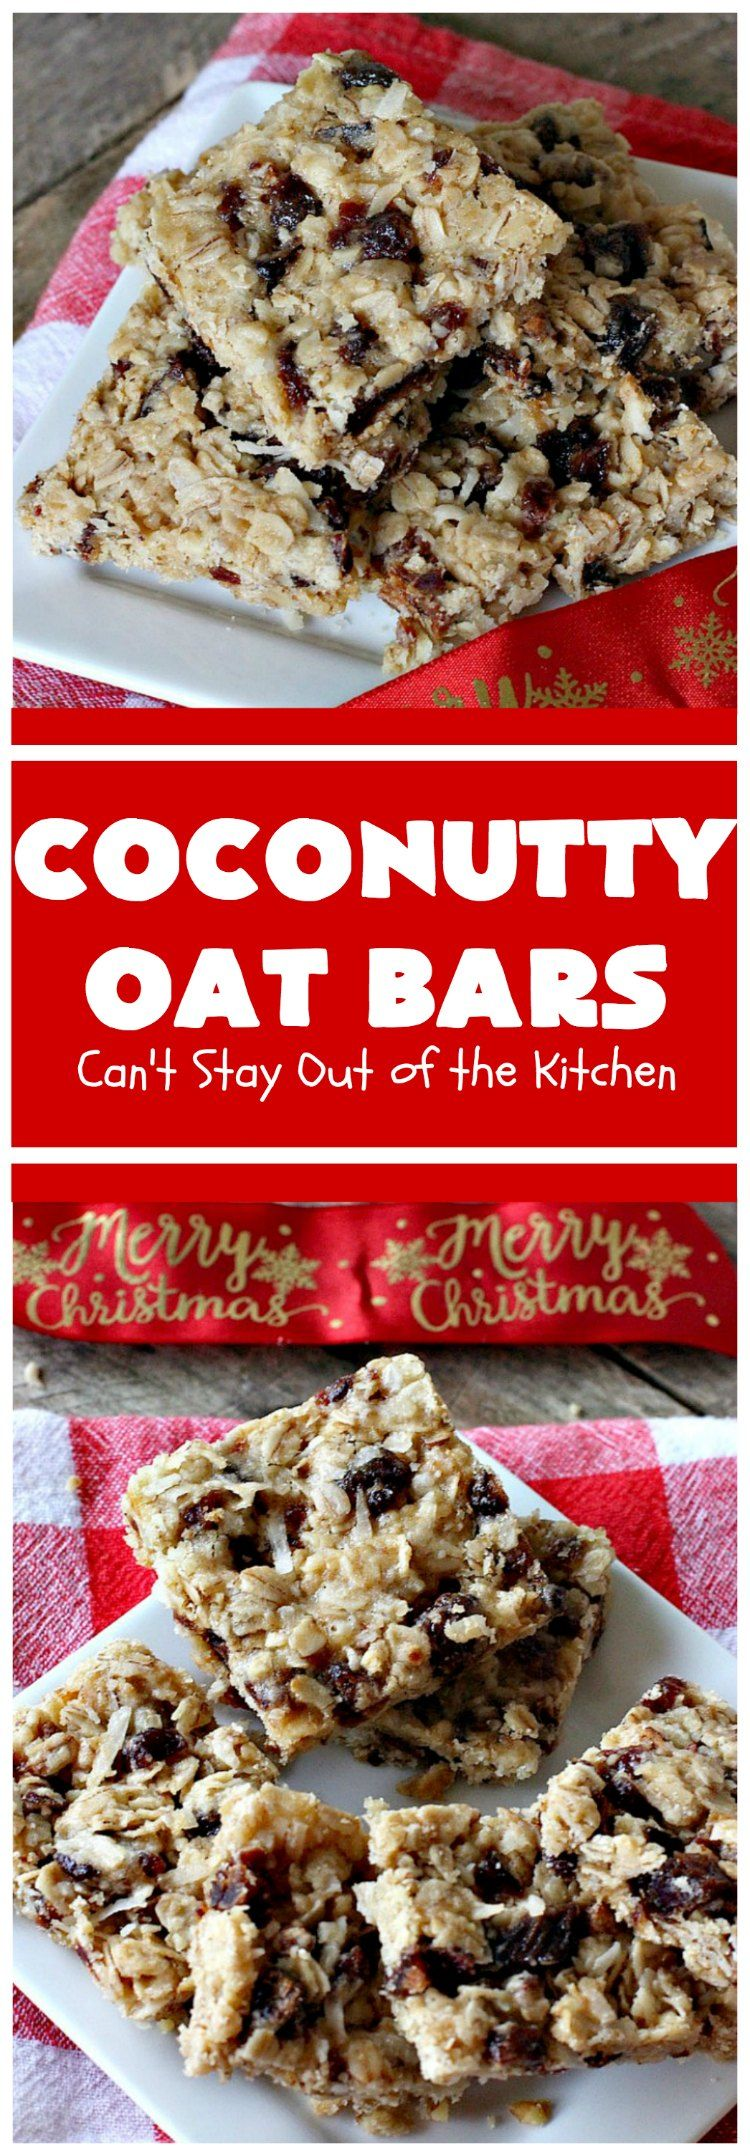 coconutty oat bars recipe in 2019 oat bars food recipes coconut desserts on hebbar s kitchen recipes oats id=13237